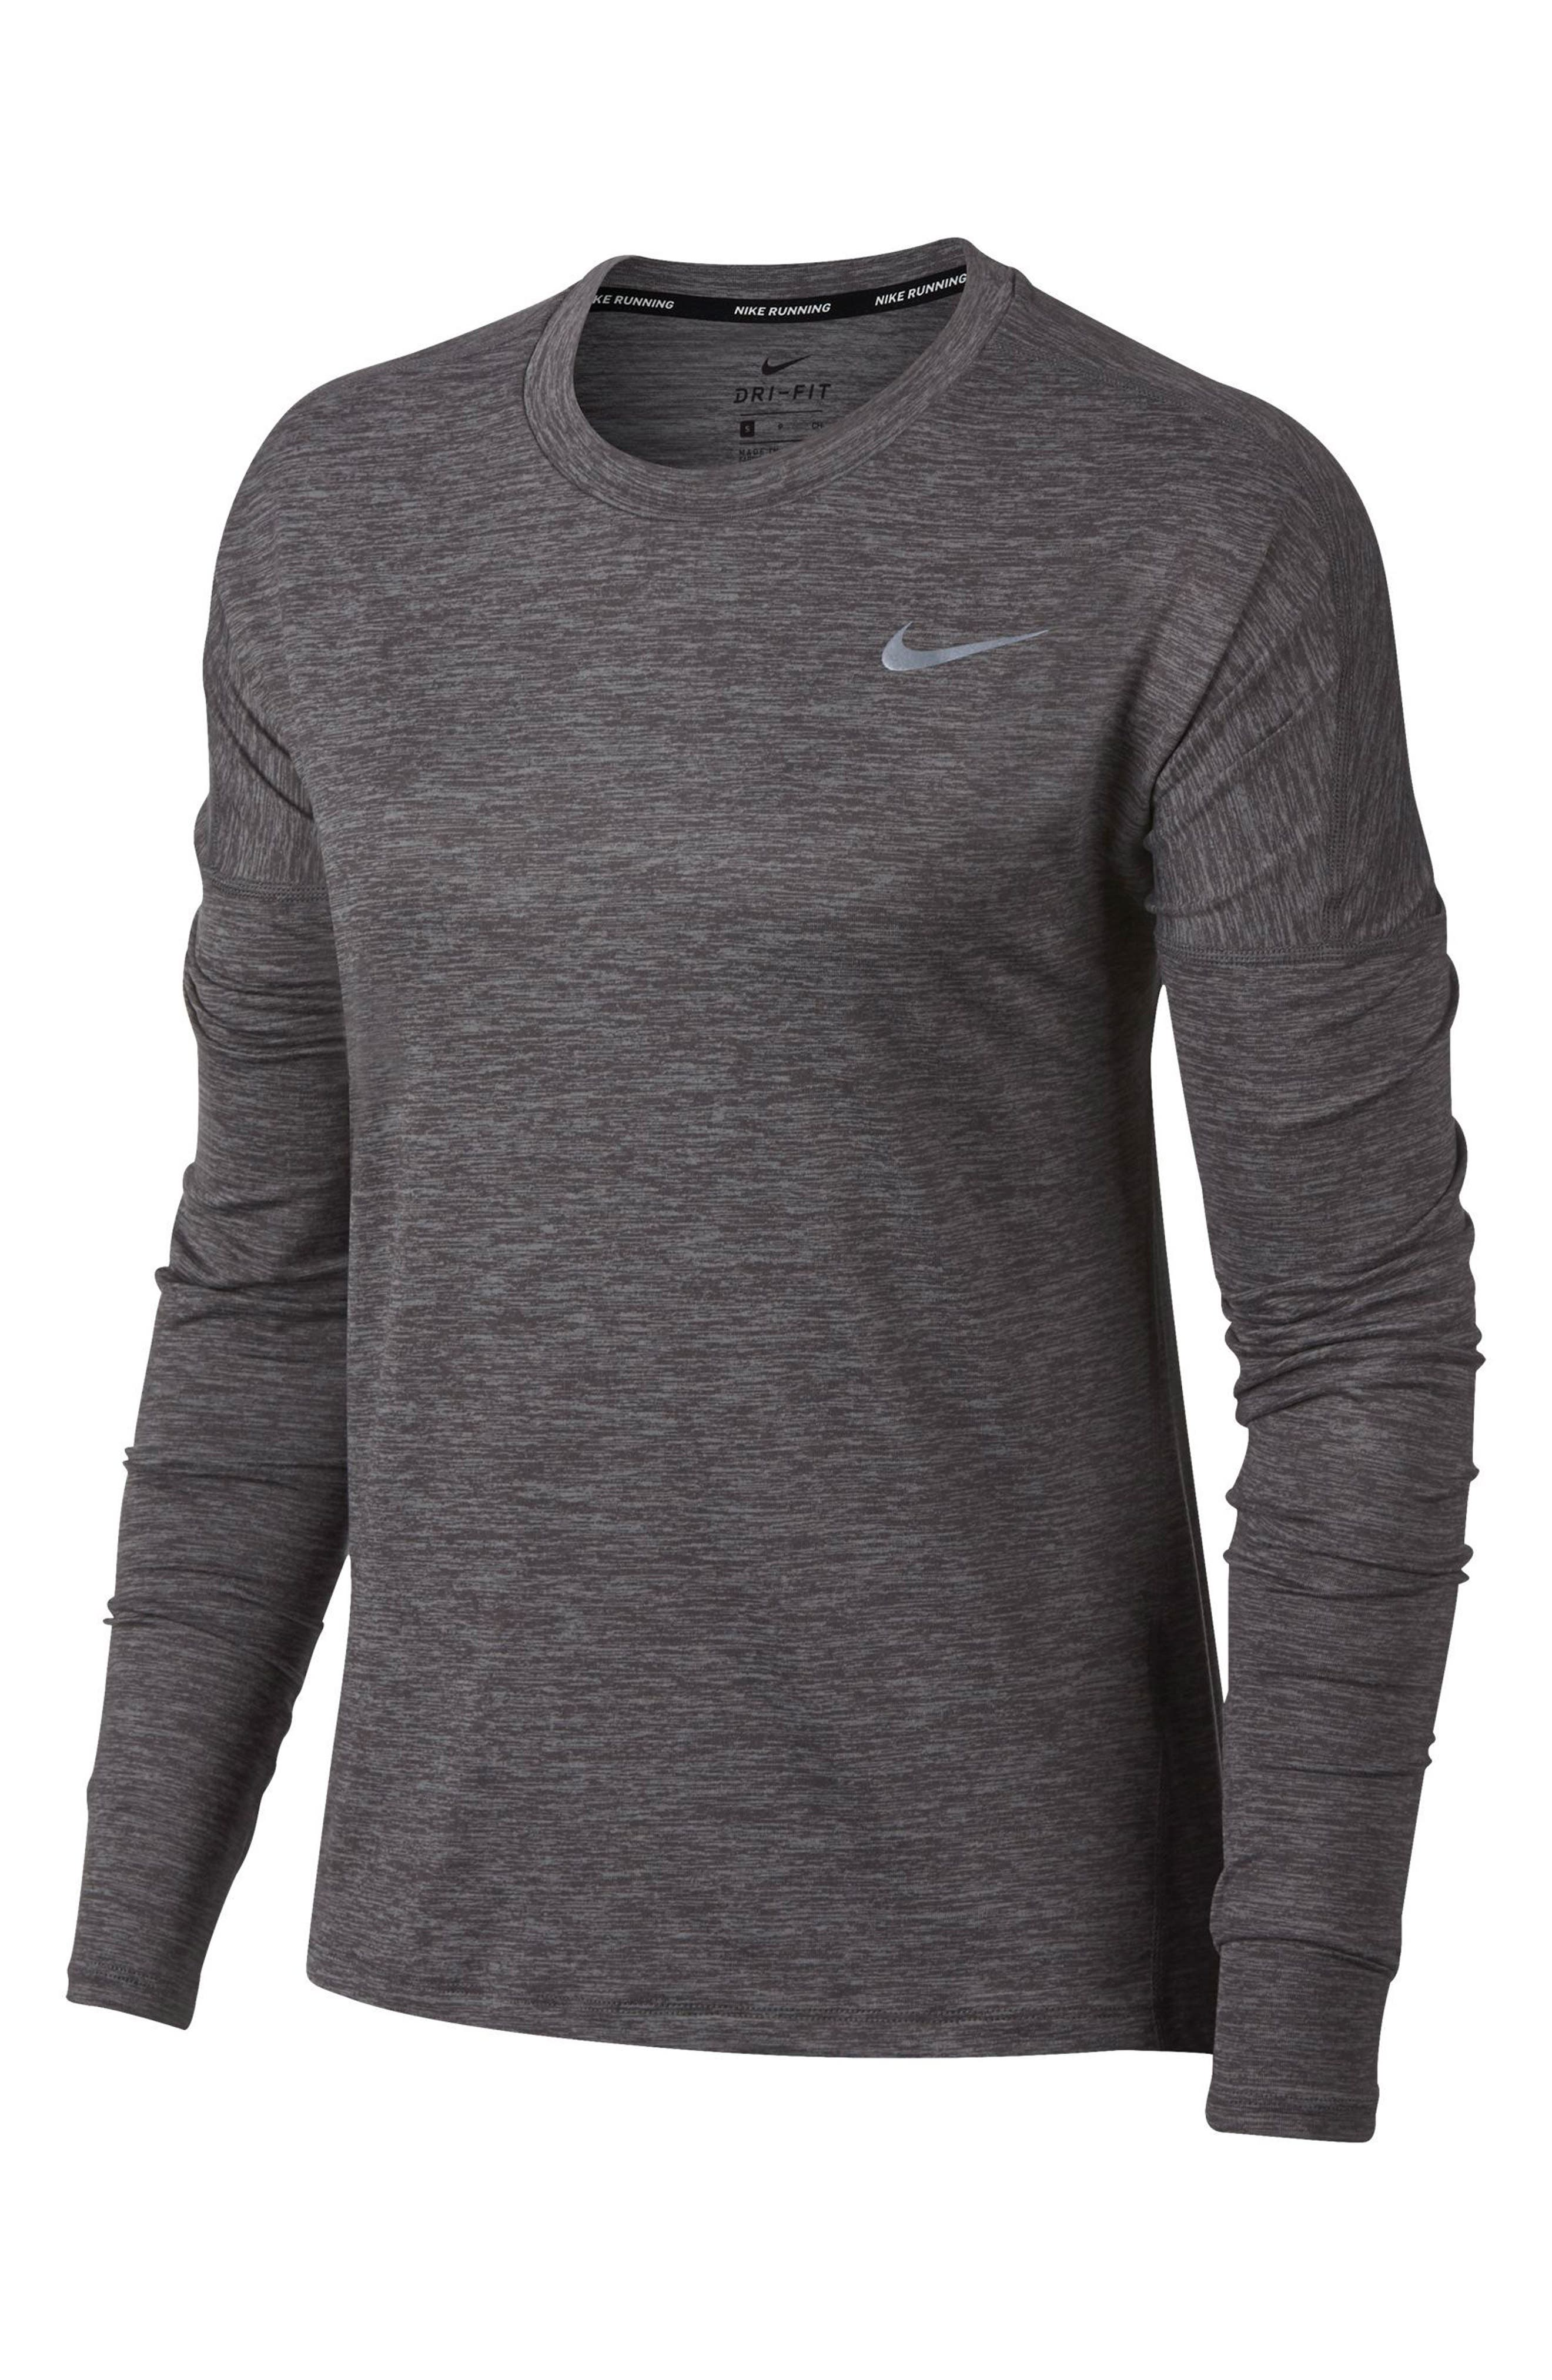 NIKE,                             Dry Element Long Sleeve Top,                             Alternate thumbnail 7, color,                             036